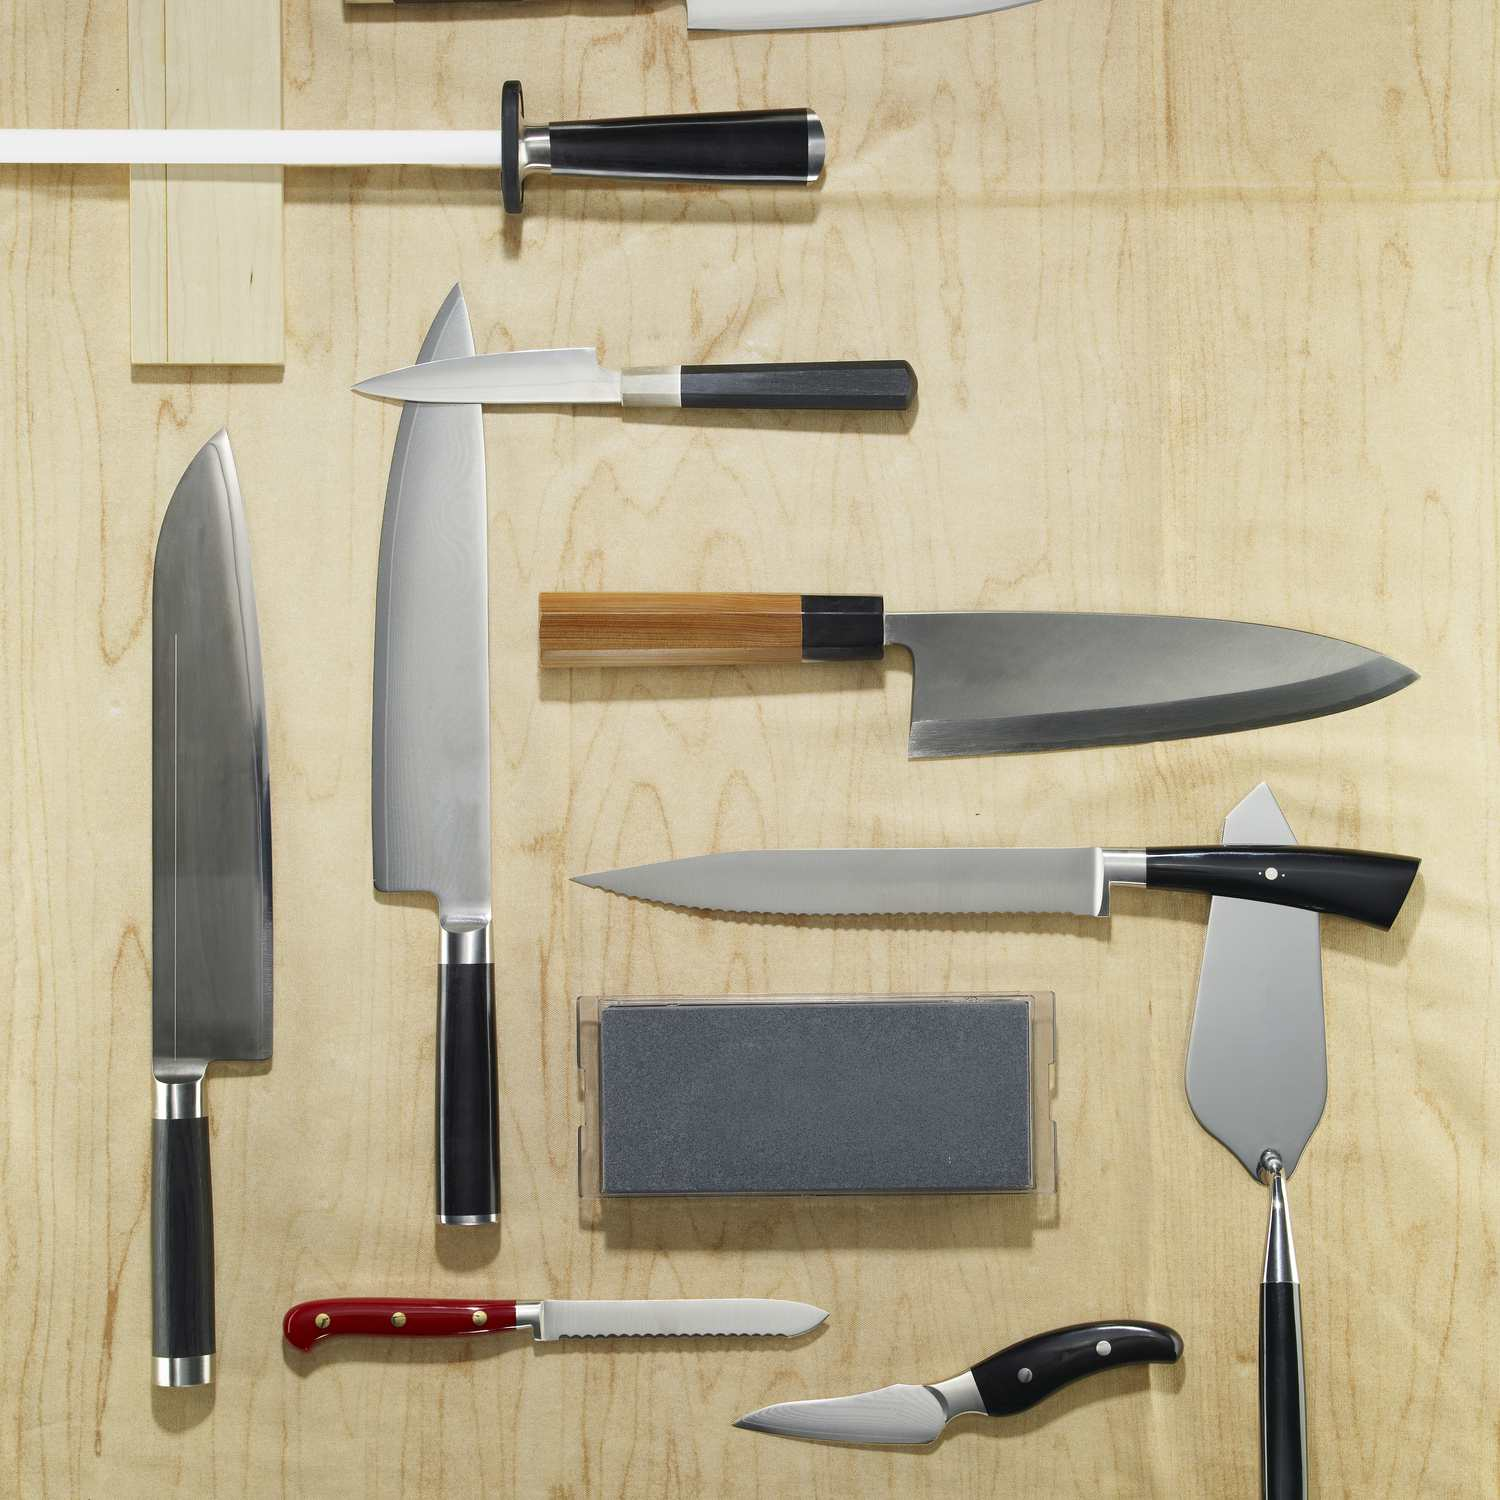 Knife grid